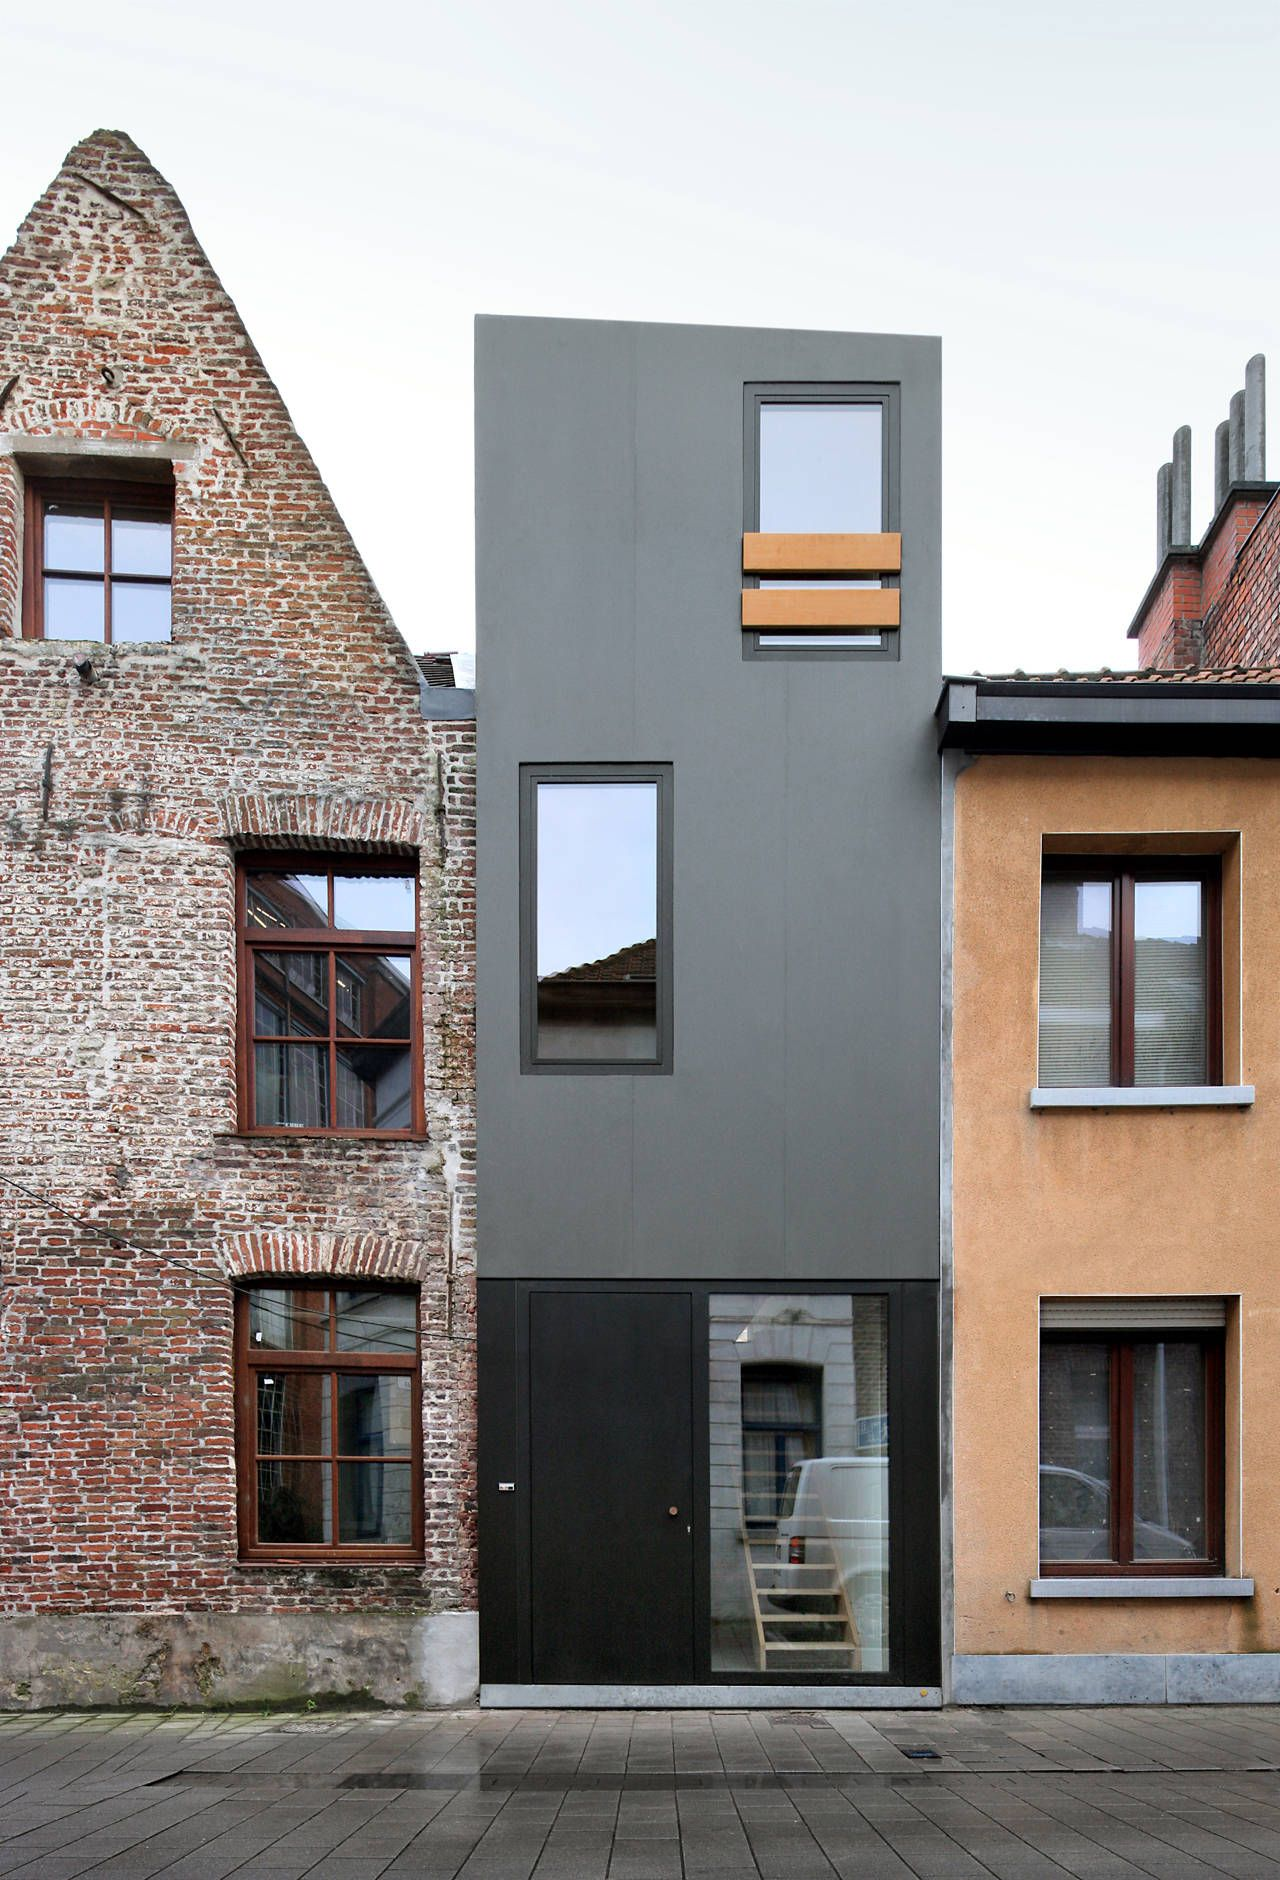 a narrow house squeezed in between two adjacent buildings